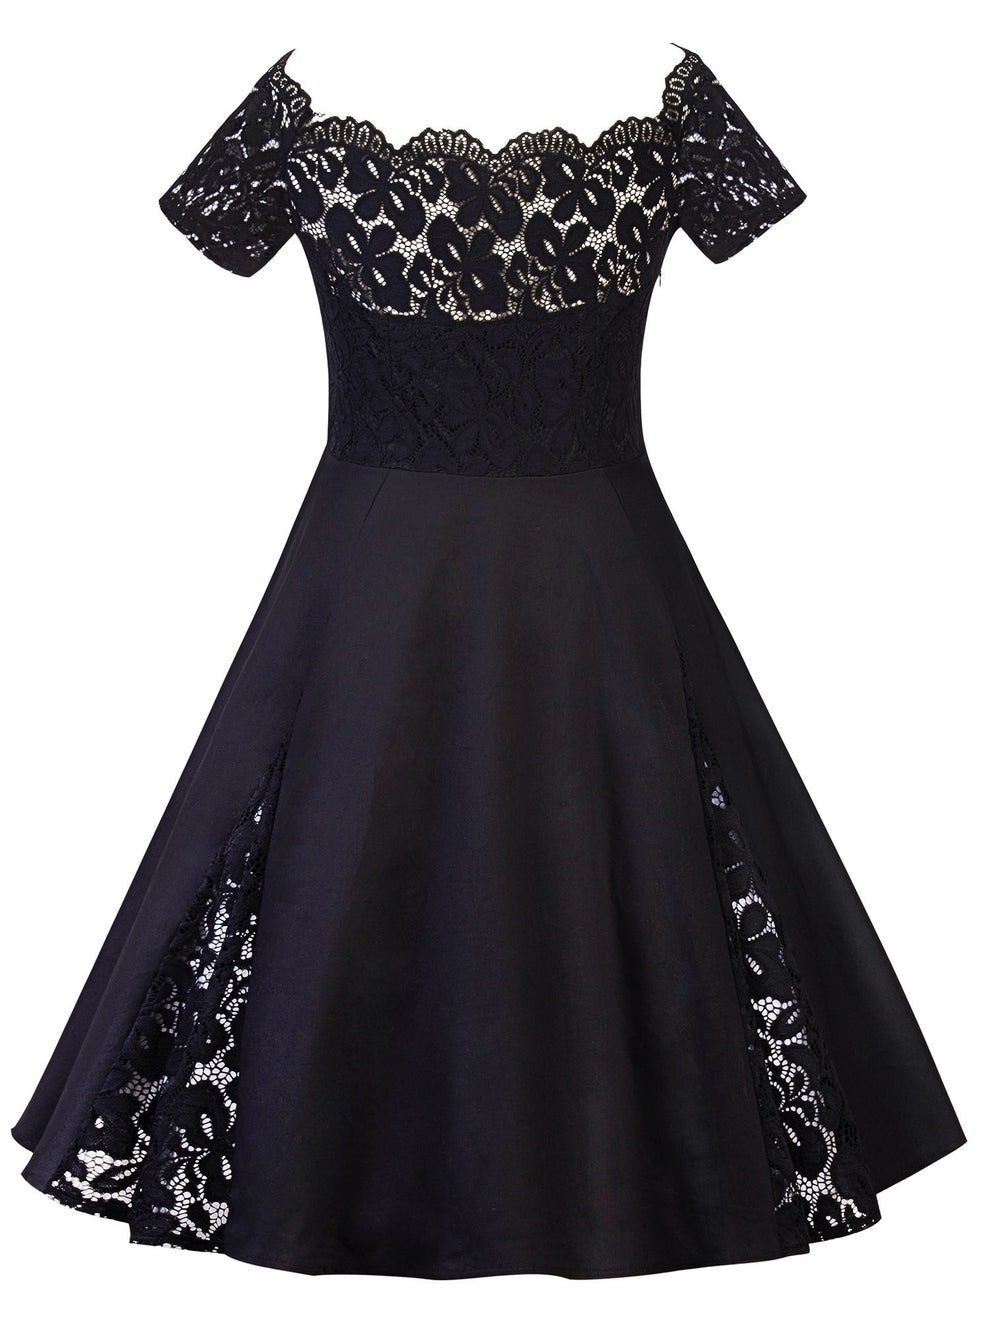 27 Little Black Dresses From Walmart You Need In Your Life Off Shoulder Lace Dress Short Sleeve Lace Dress Short Lace Dress [ 1320 x 990 Pixel ]